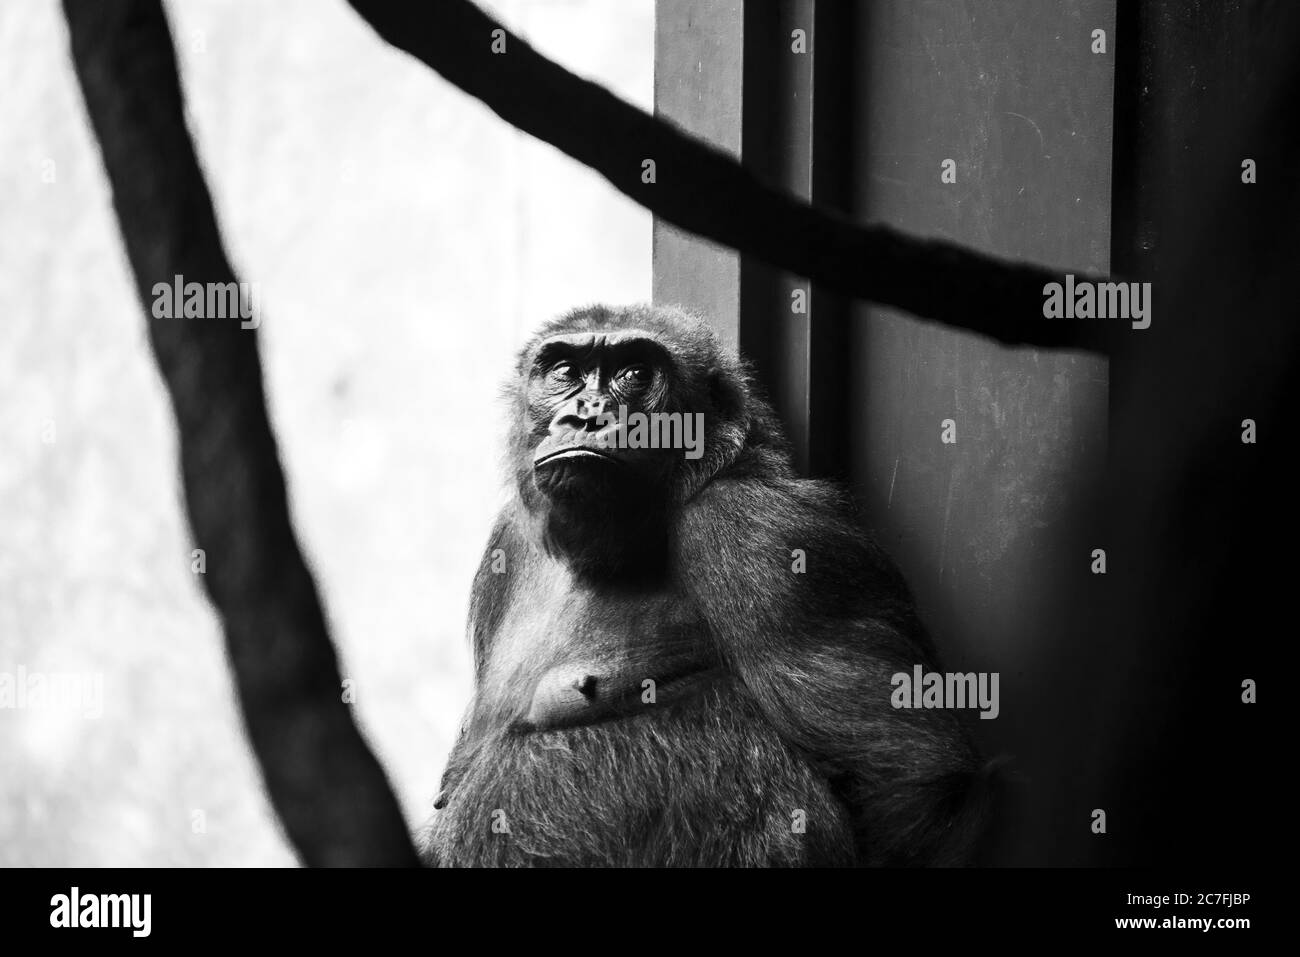 A Closeup Greyscale Shot Of A Chimpanzee With A Serious Face Stock Photo Alamy